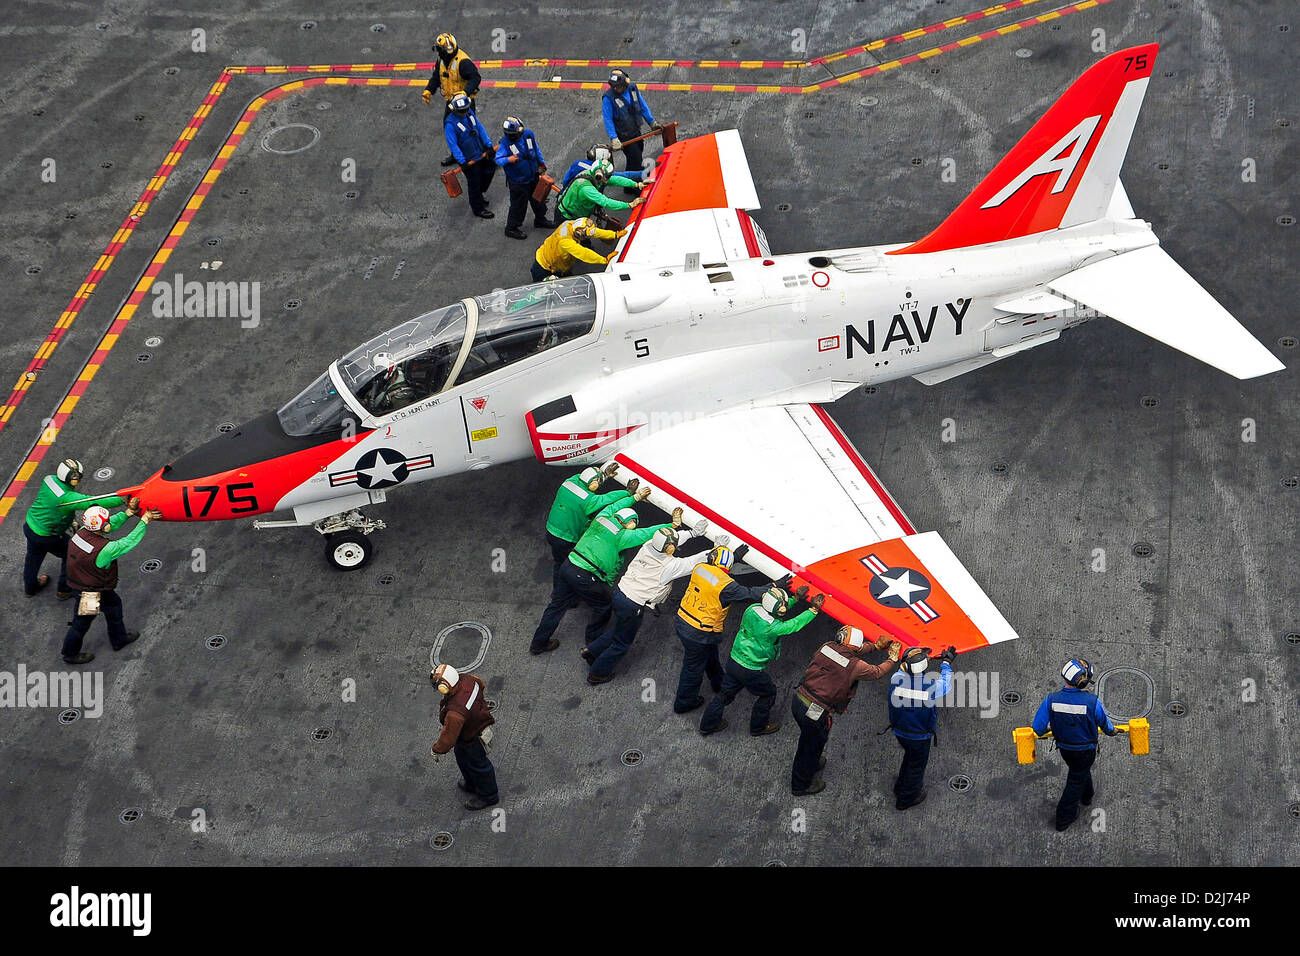 US Navy Sailors push back a T-45C Goshawk training aircraft on the flight deck of the aircraft carrier USS Harry - Stock Image